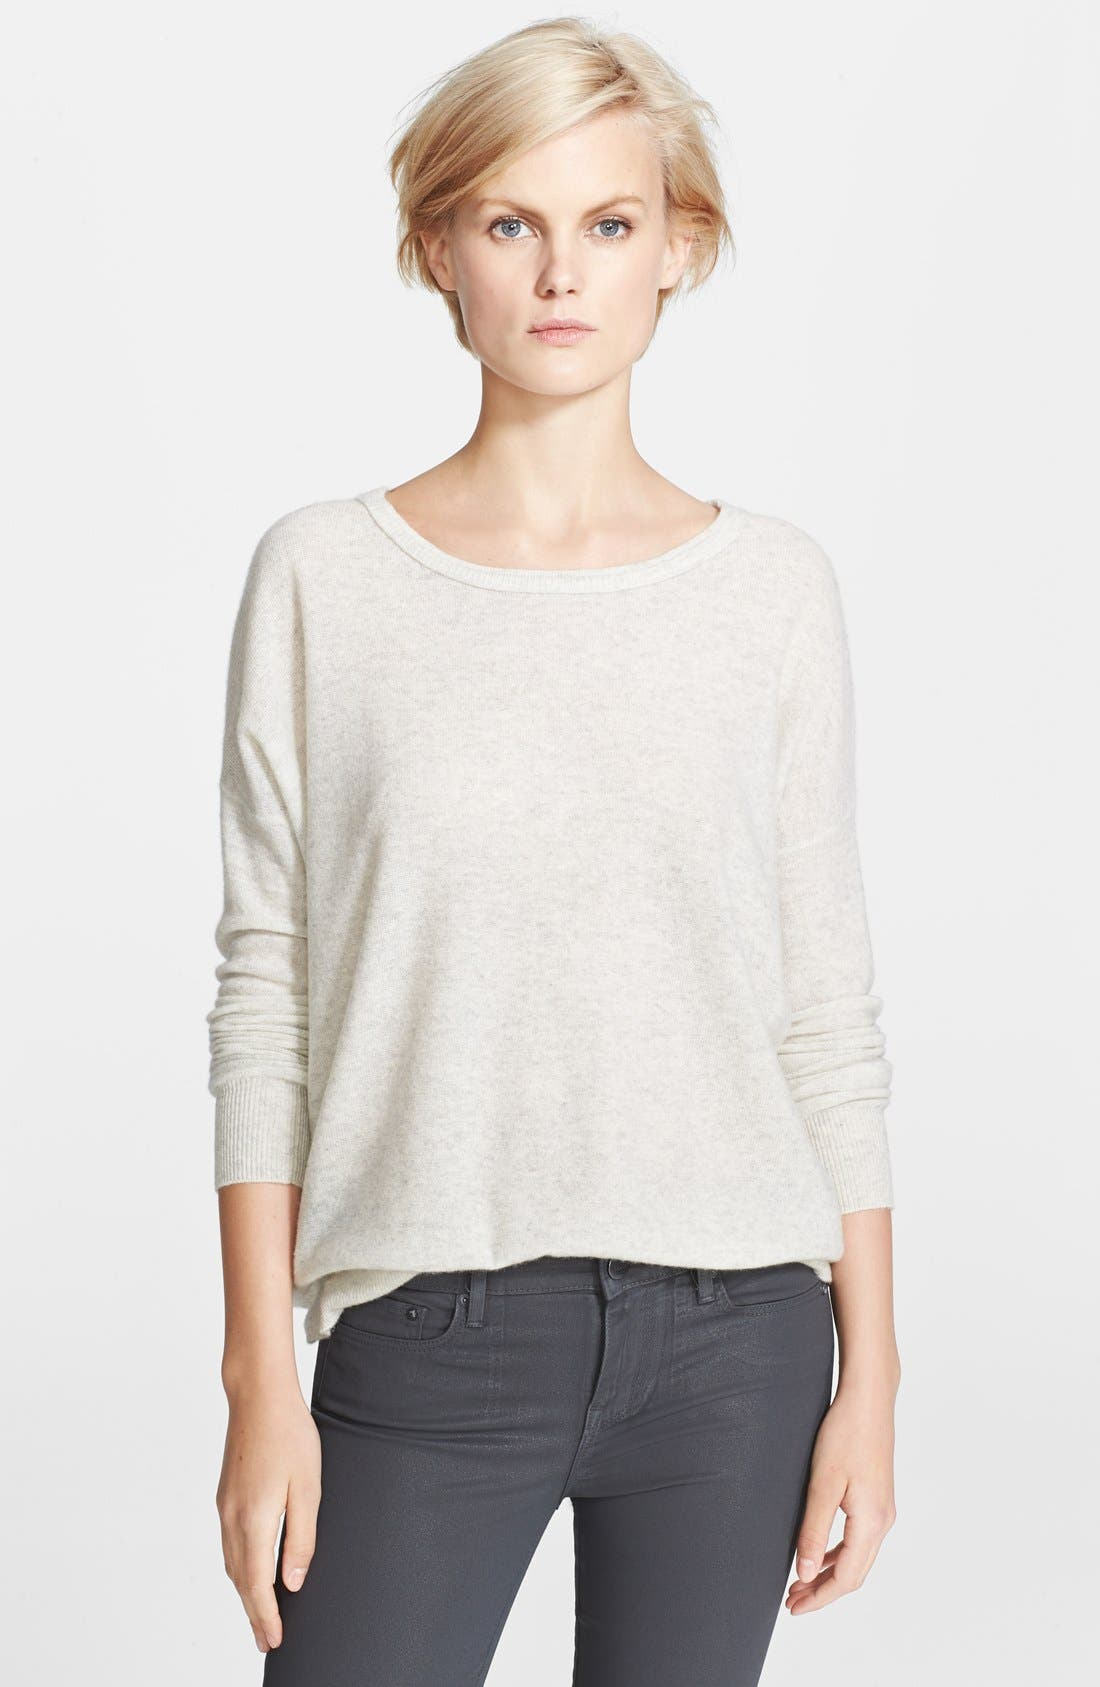 Main Image - Vince 'Square' Cashmere Sweater